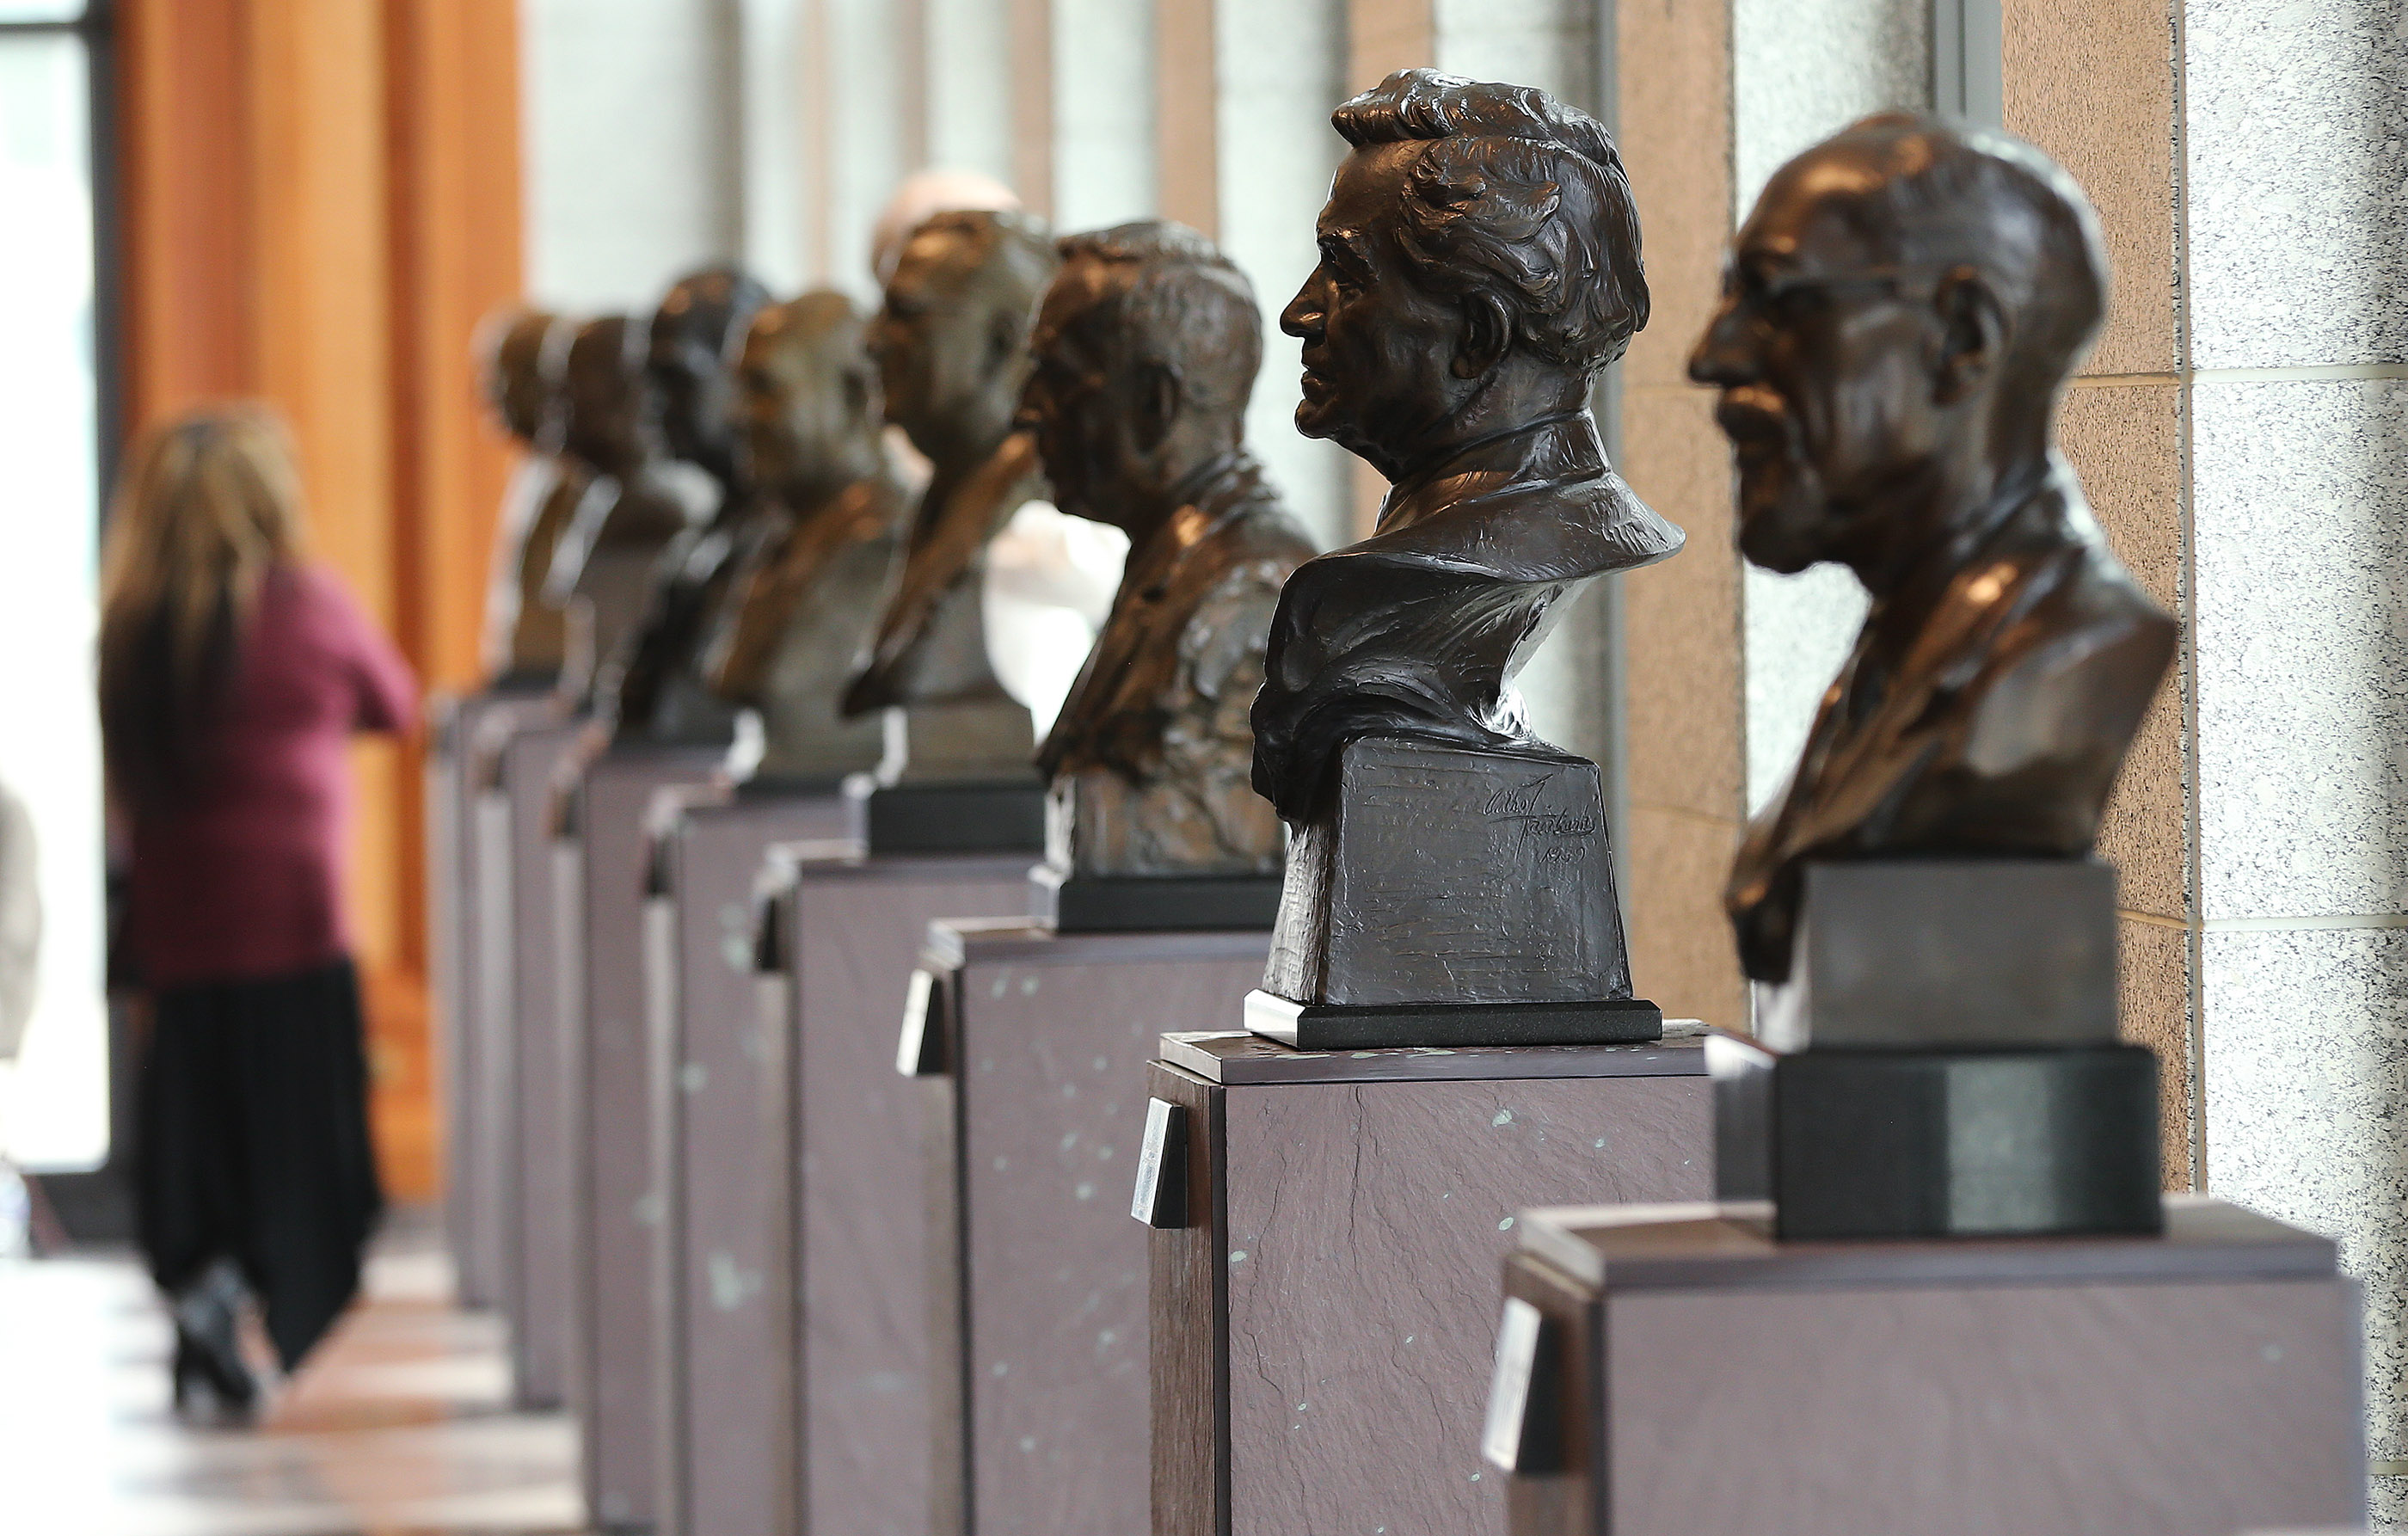 A conference attendee looks over busts of church prophets during the 188th Semiannual General Conference of The Church of Jesus Christ of Latter-day Saints in Salt Lake City on Sunday, Oct. 7, 2018.